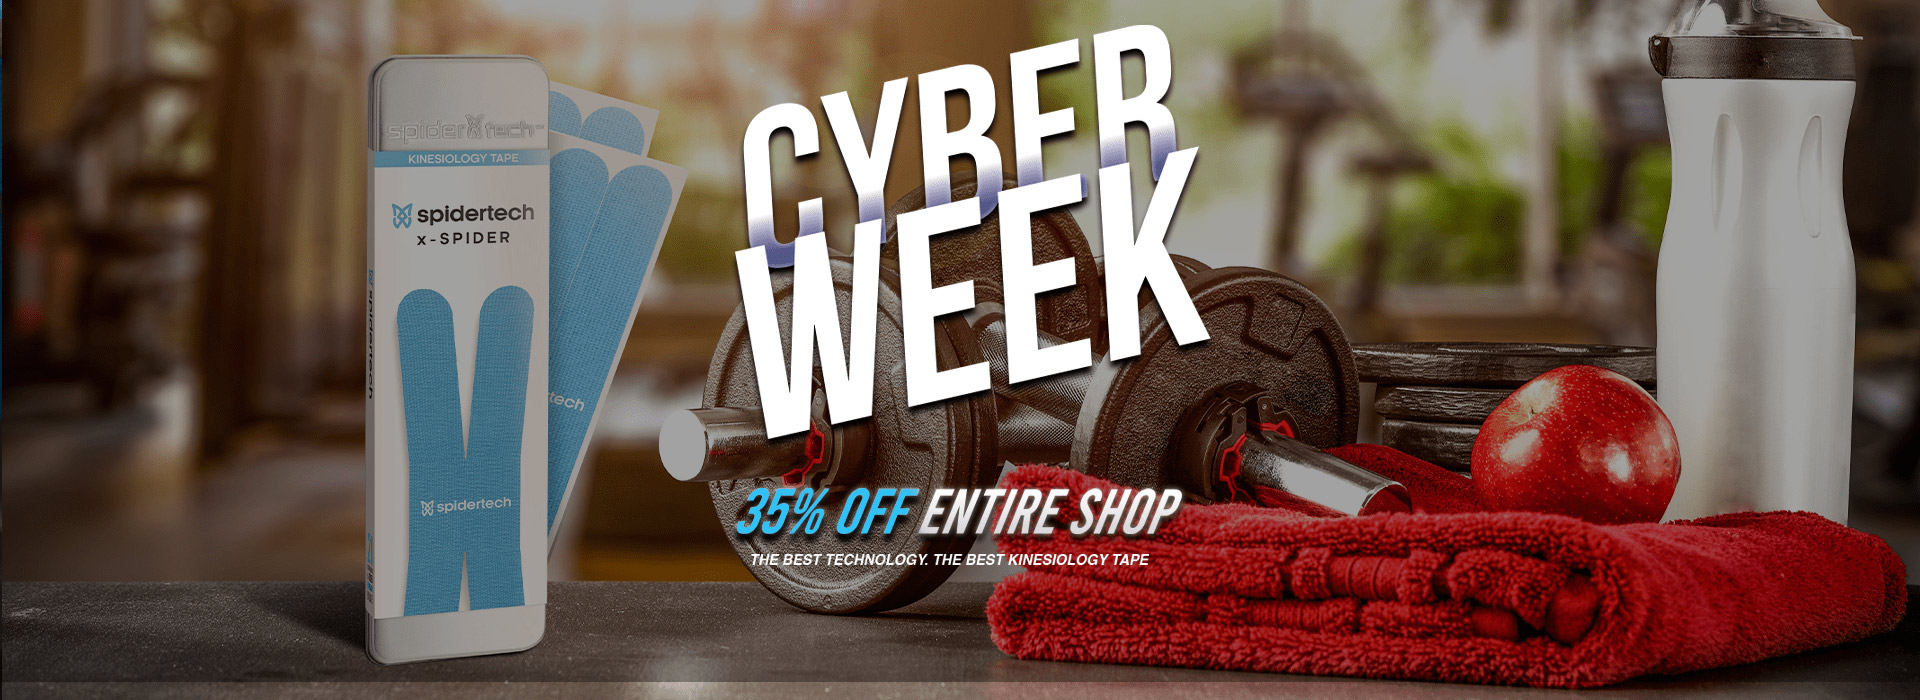 Cyber Monday. Get 35% off entire store.